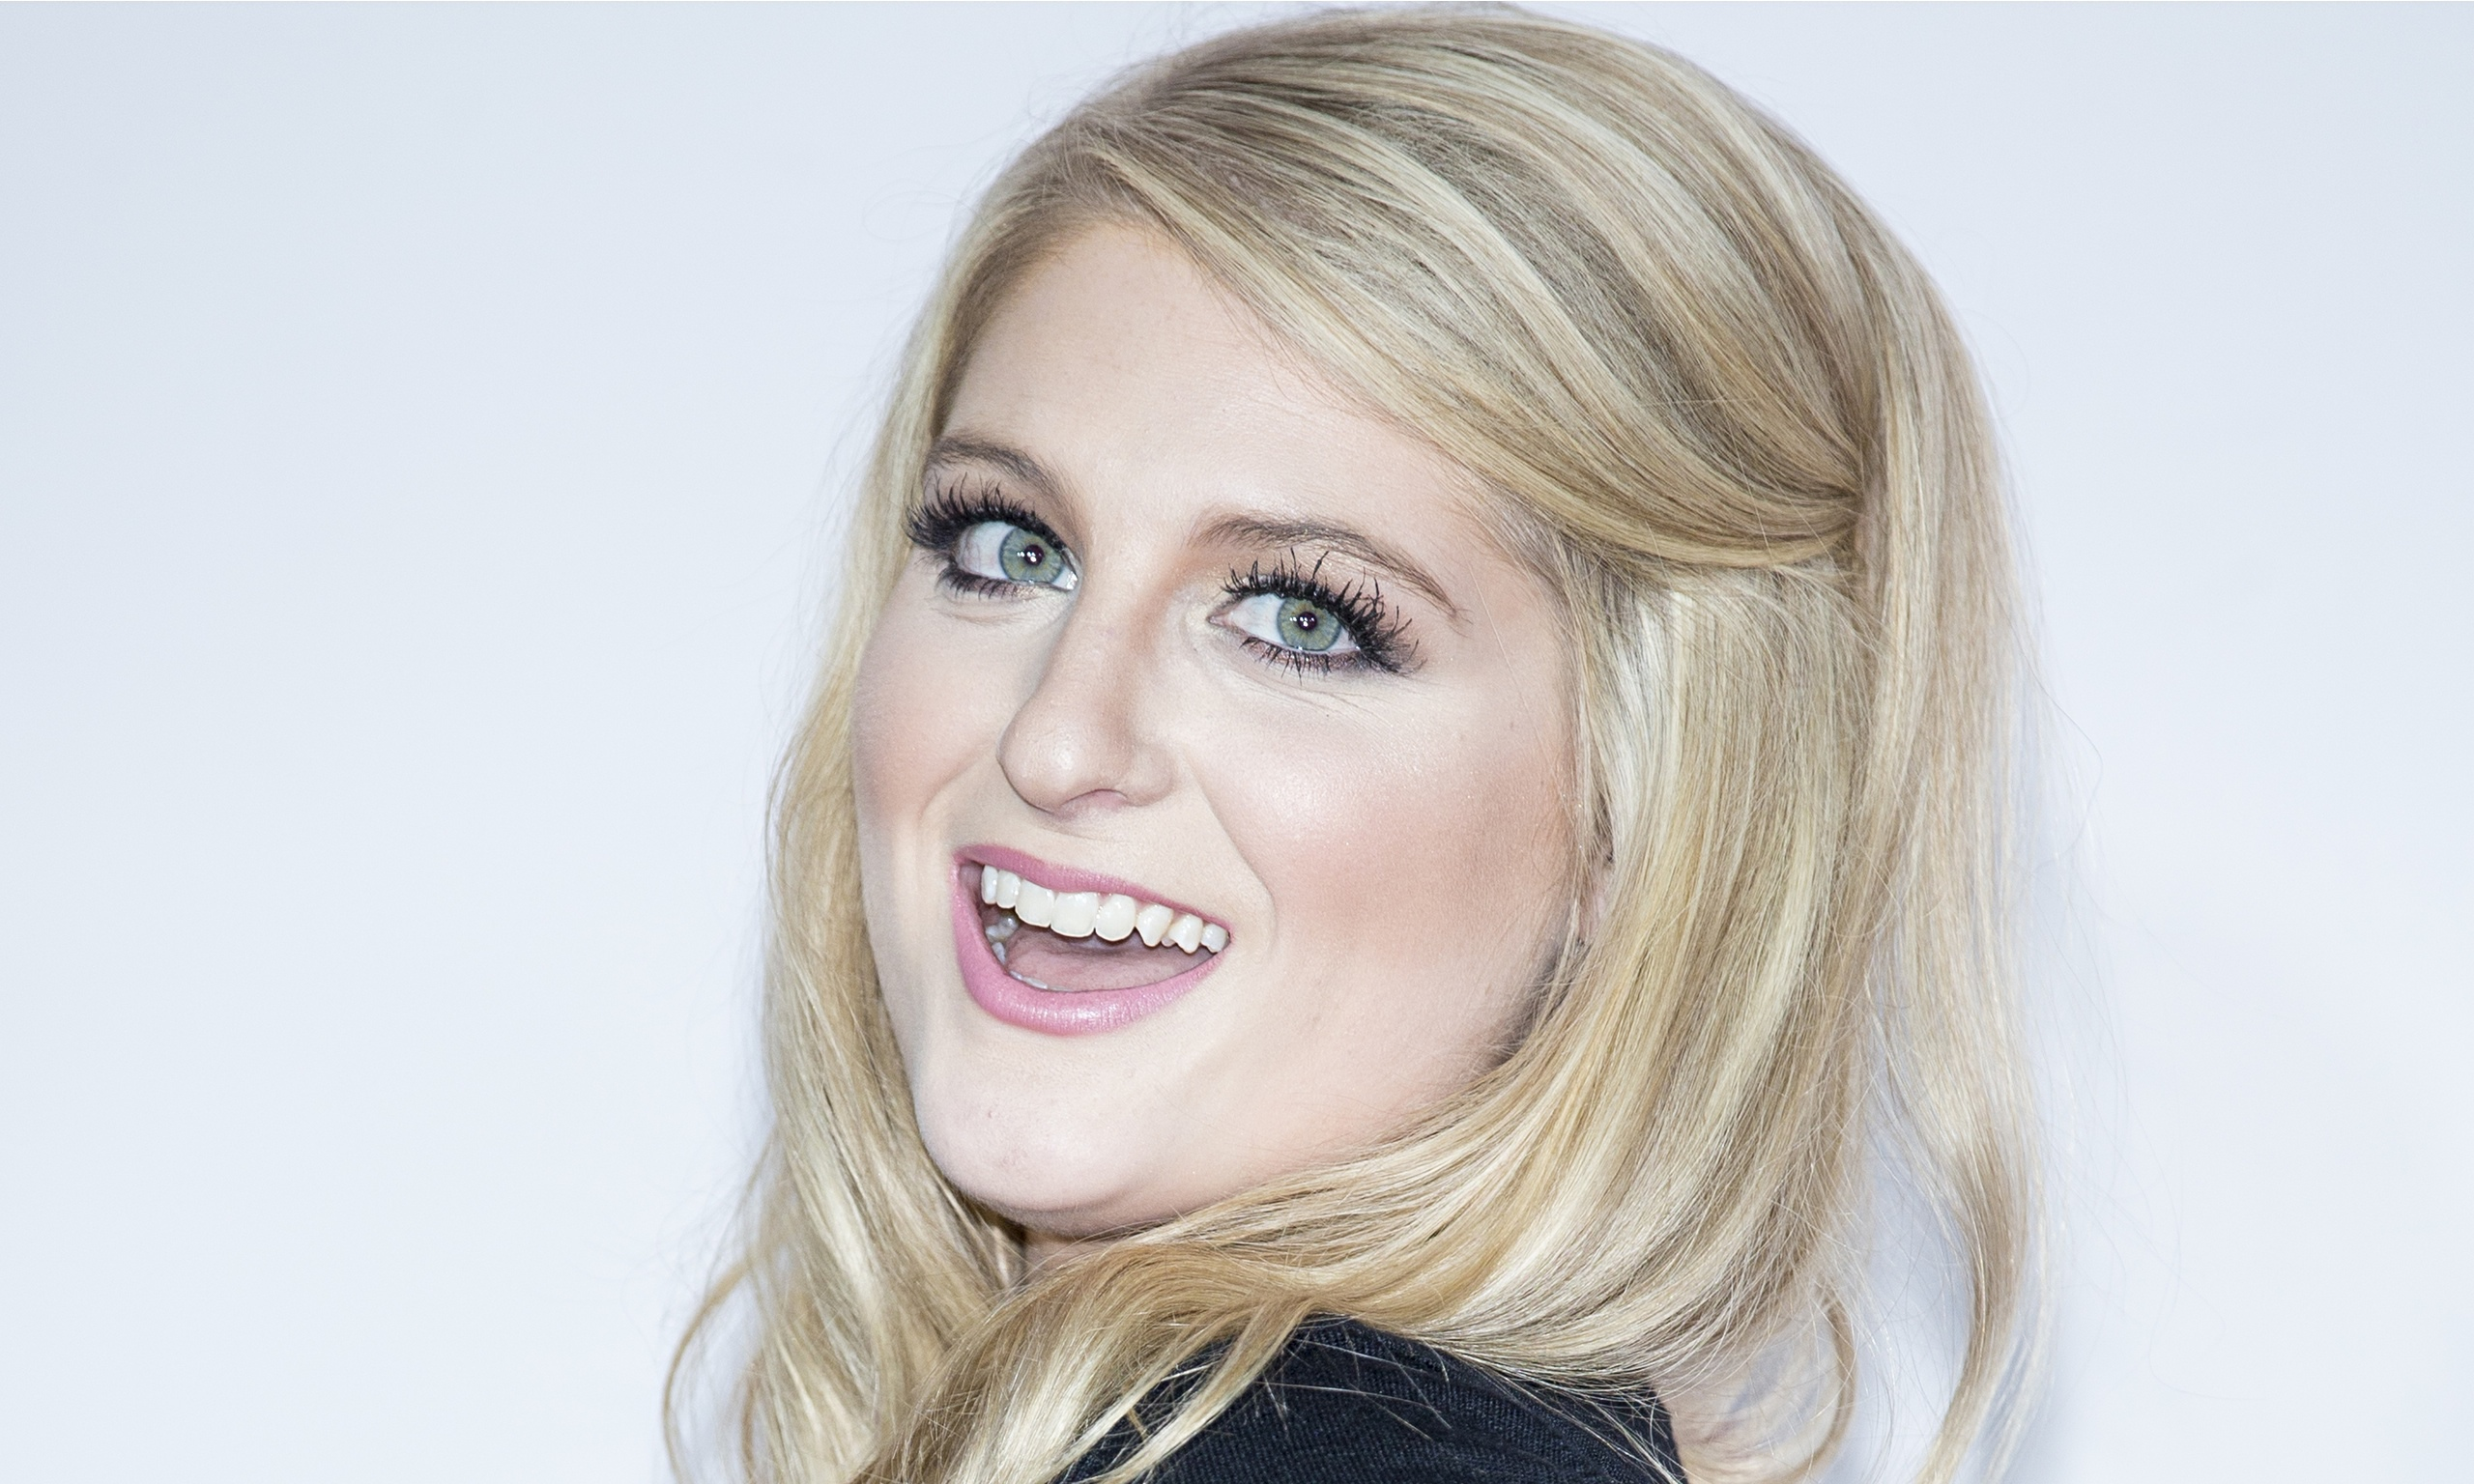 Meghan Trainor Computer Wallpaper